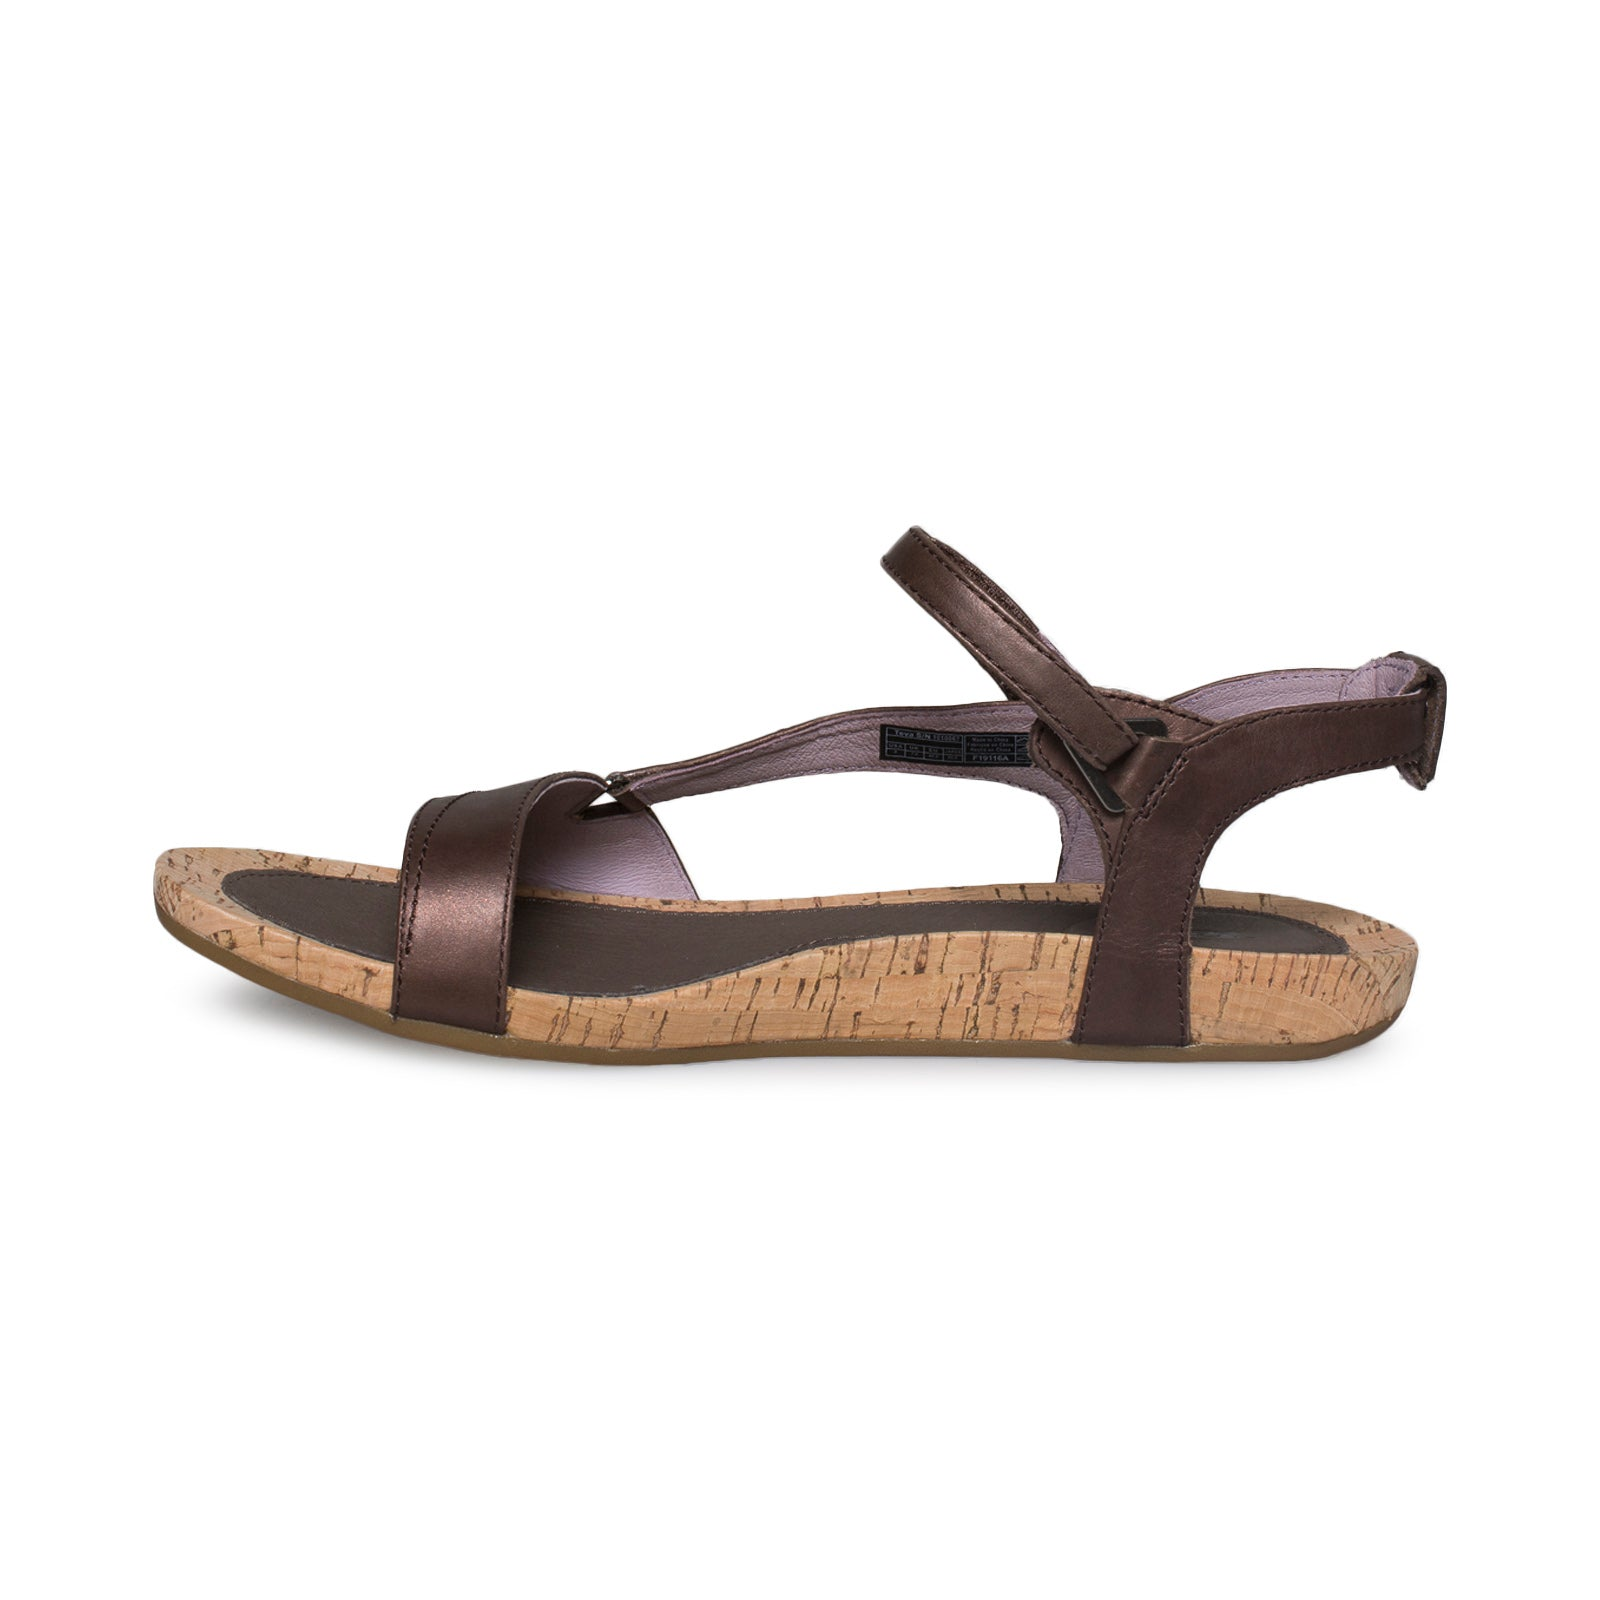 08658ffbe2d5 Teva Capri Universal Pearlized Chocolate Sandals - Women s - MyCozyBoots